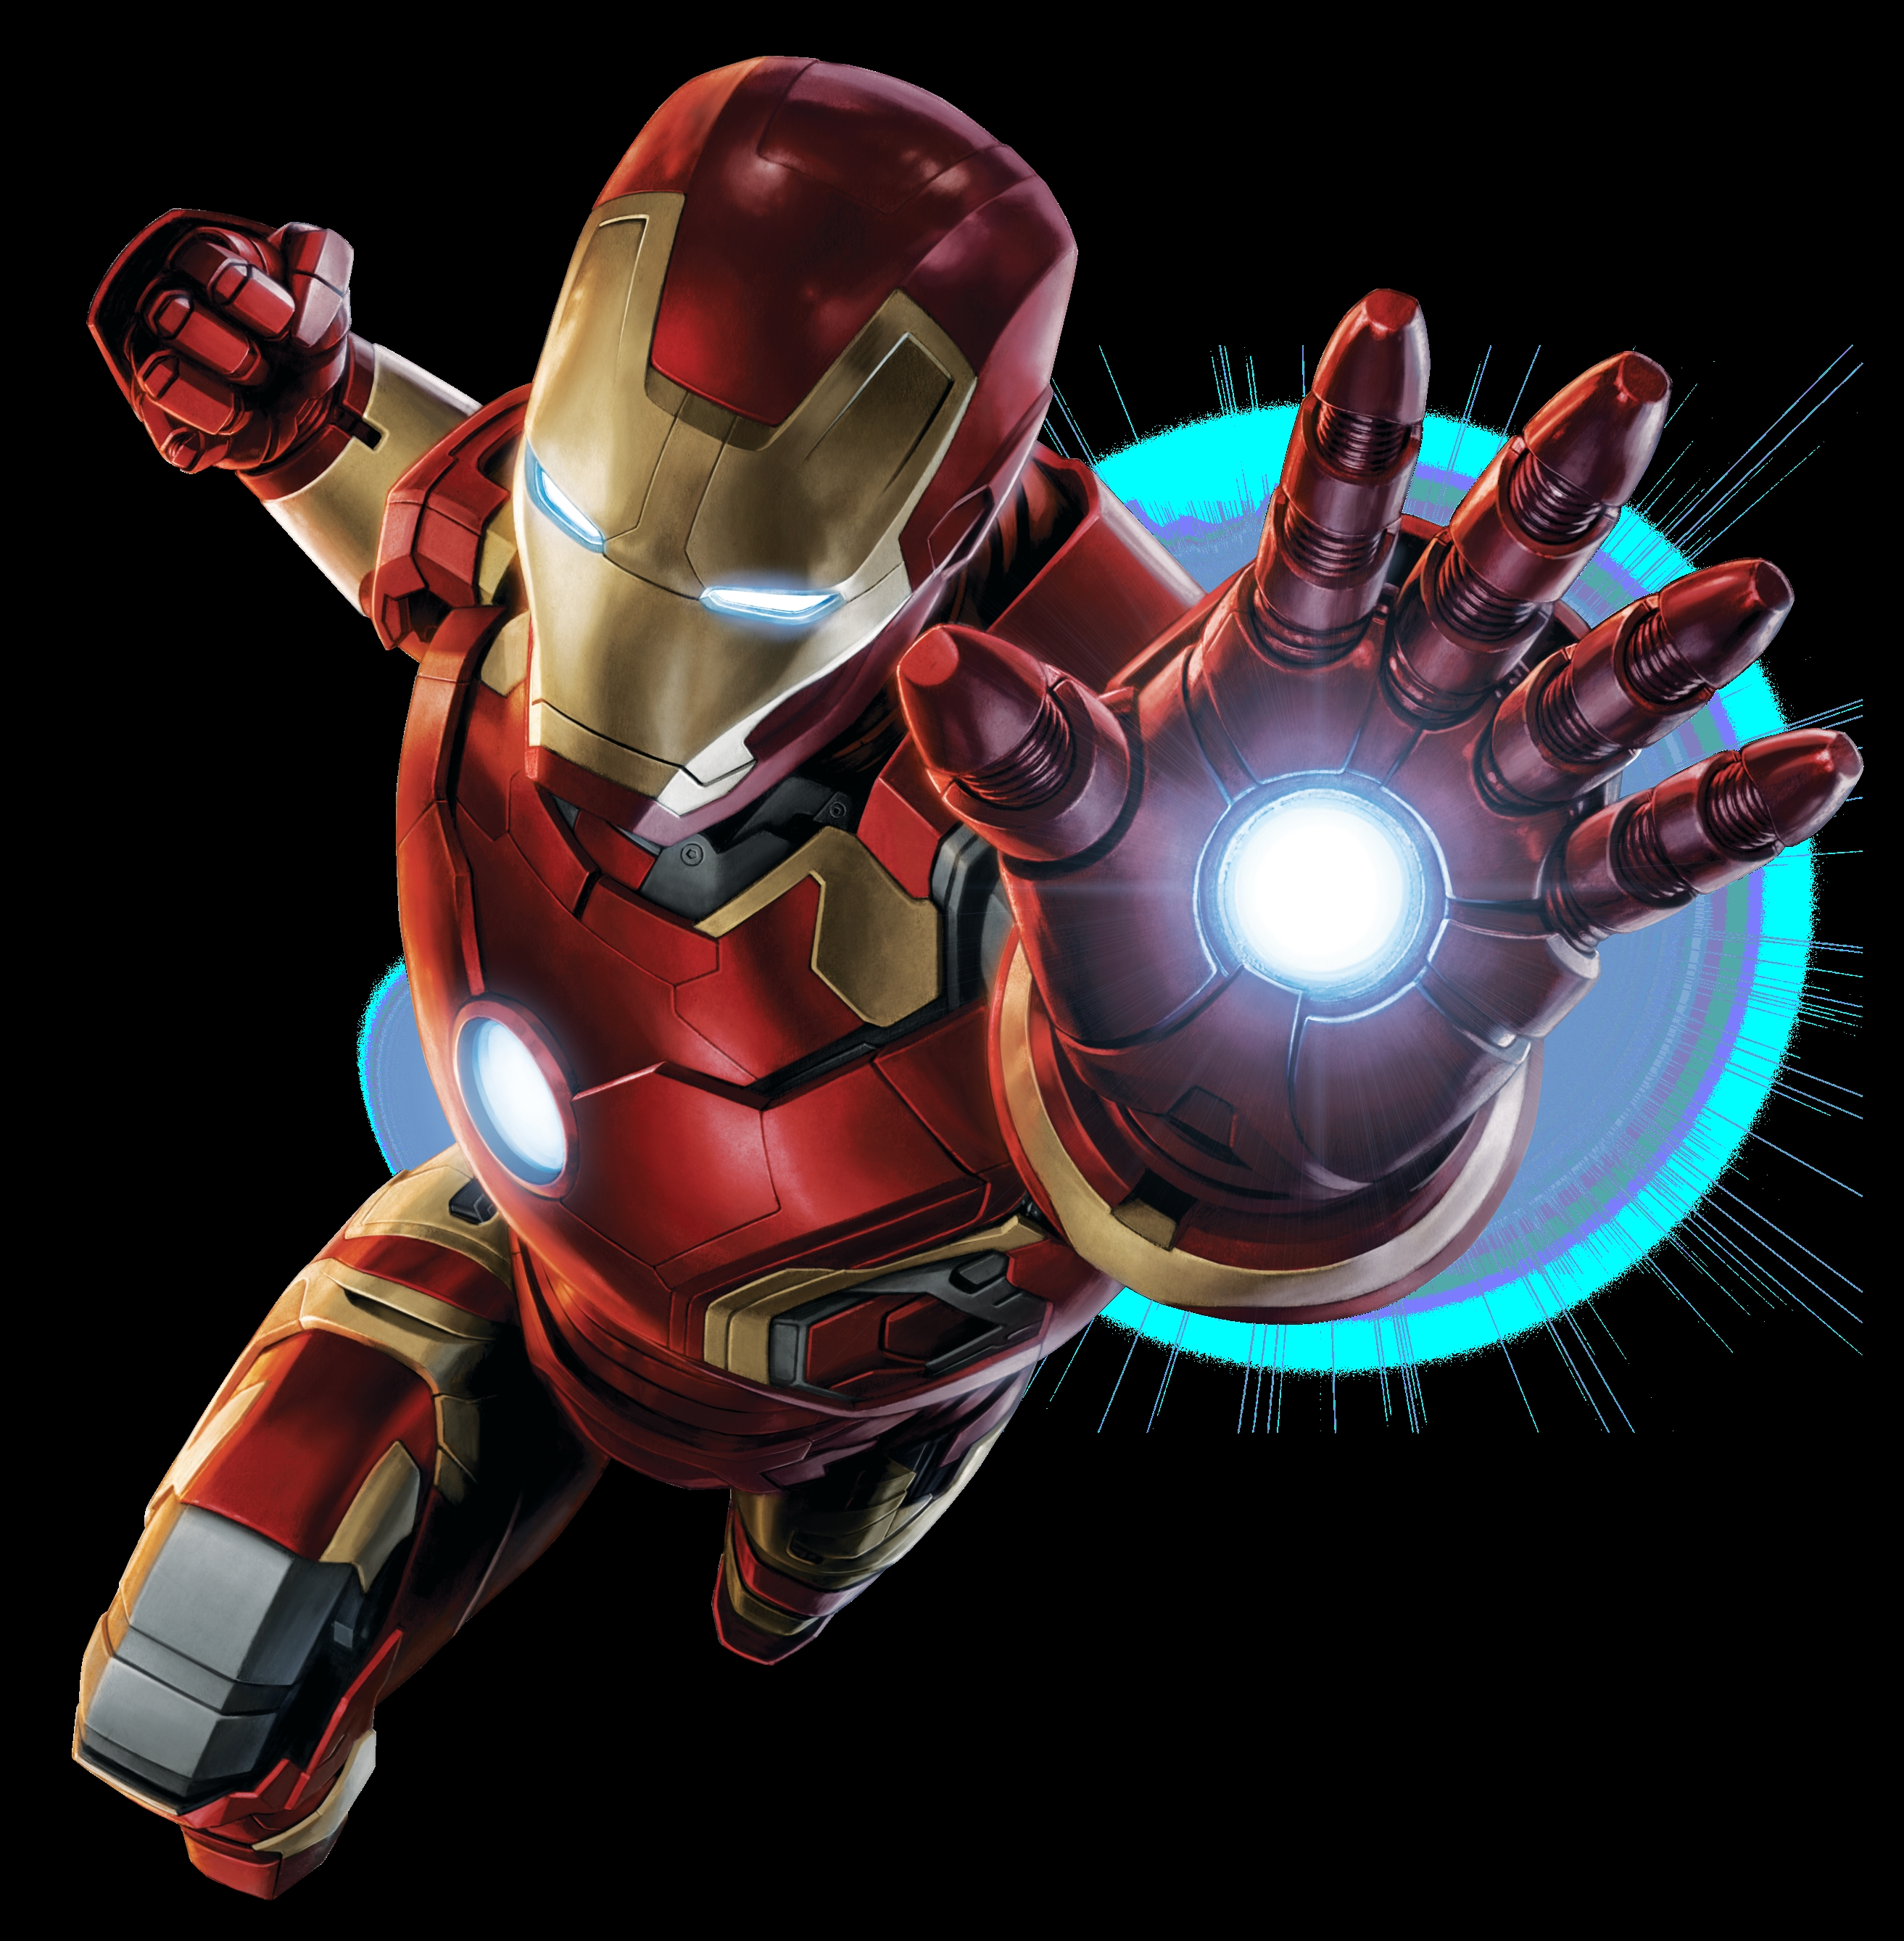 Wallpapers Hd Hulk Iron Man 4 Hd Free Wallpaper Download